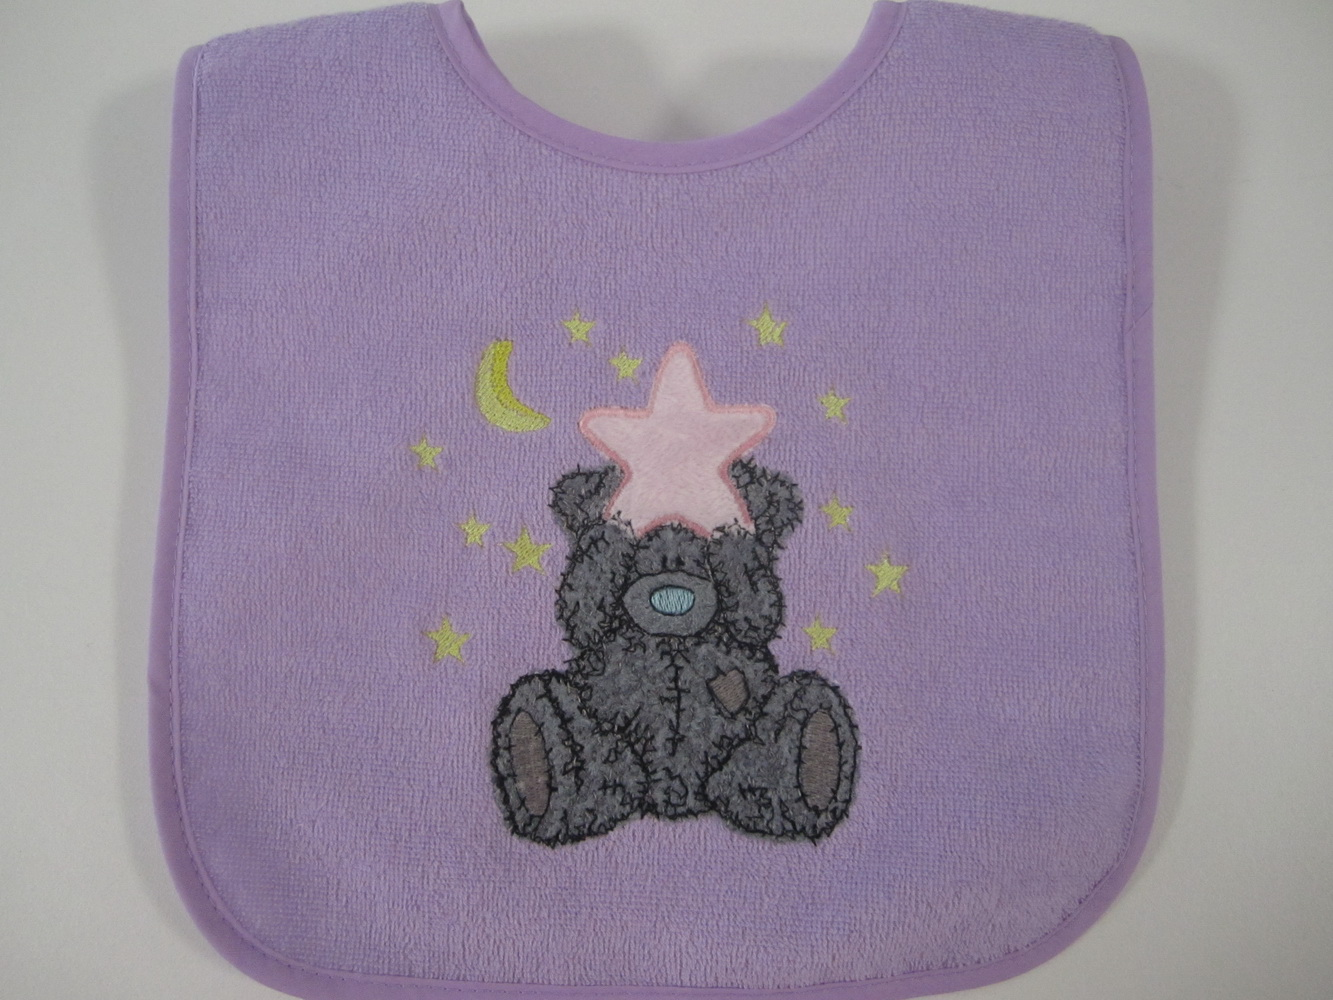 Teddy bear with big star embroidered on baby bib